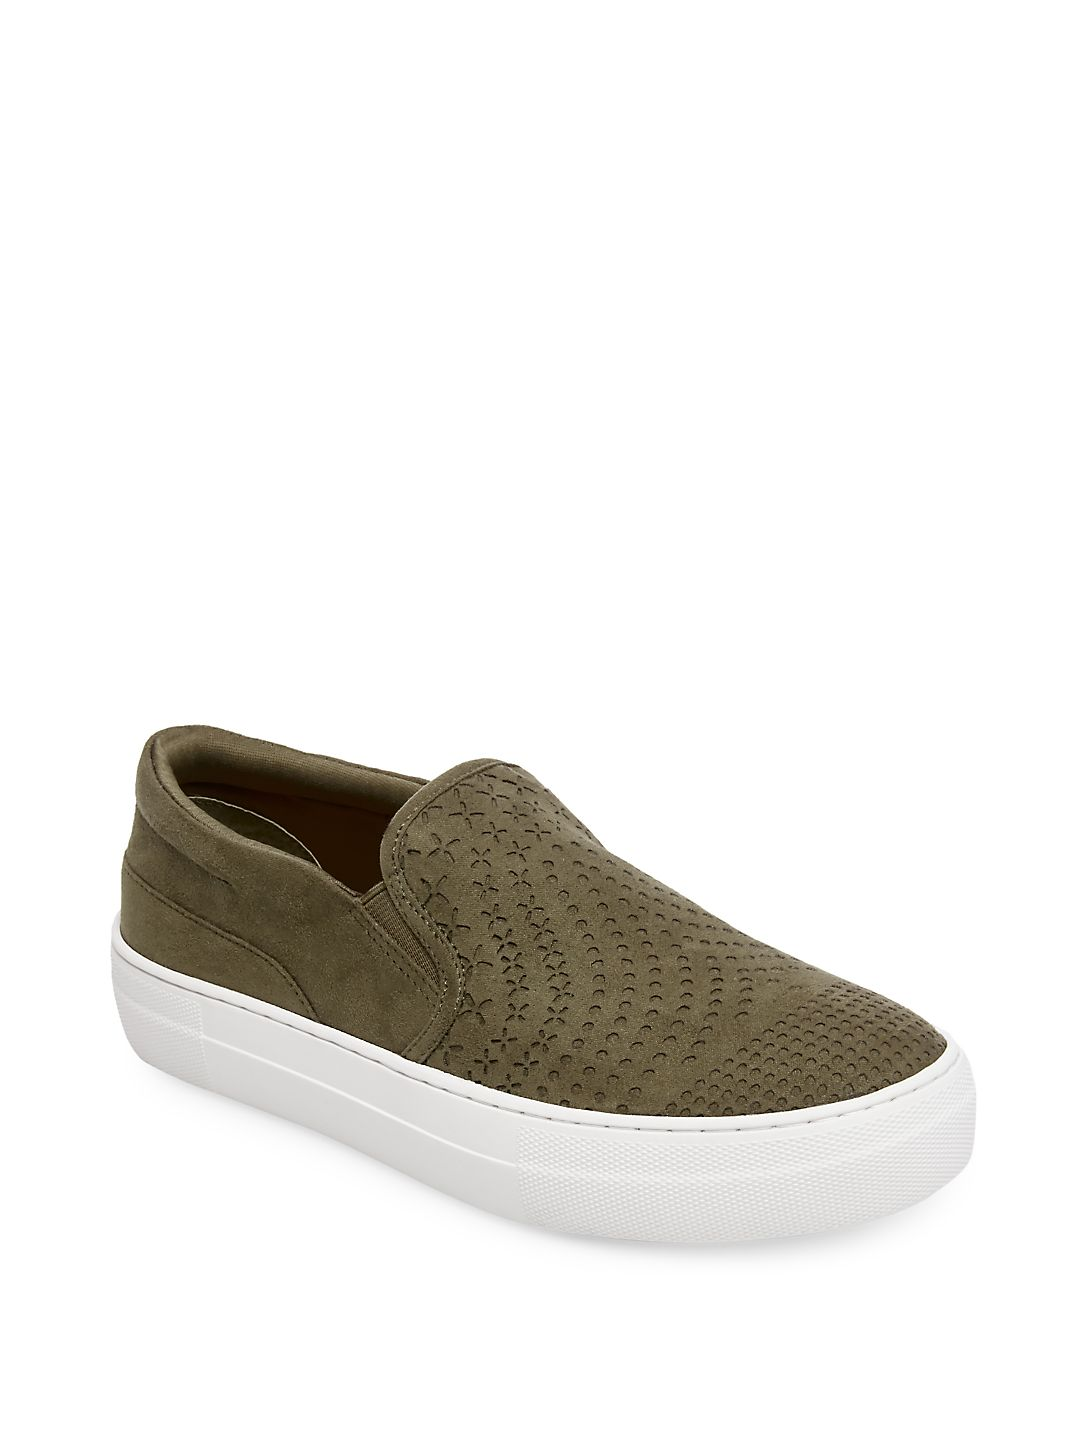 Gavin Perforated Flatform Slip-On Sneakers